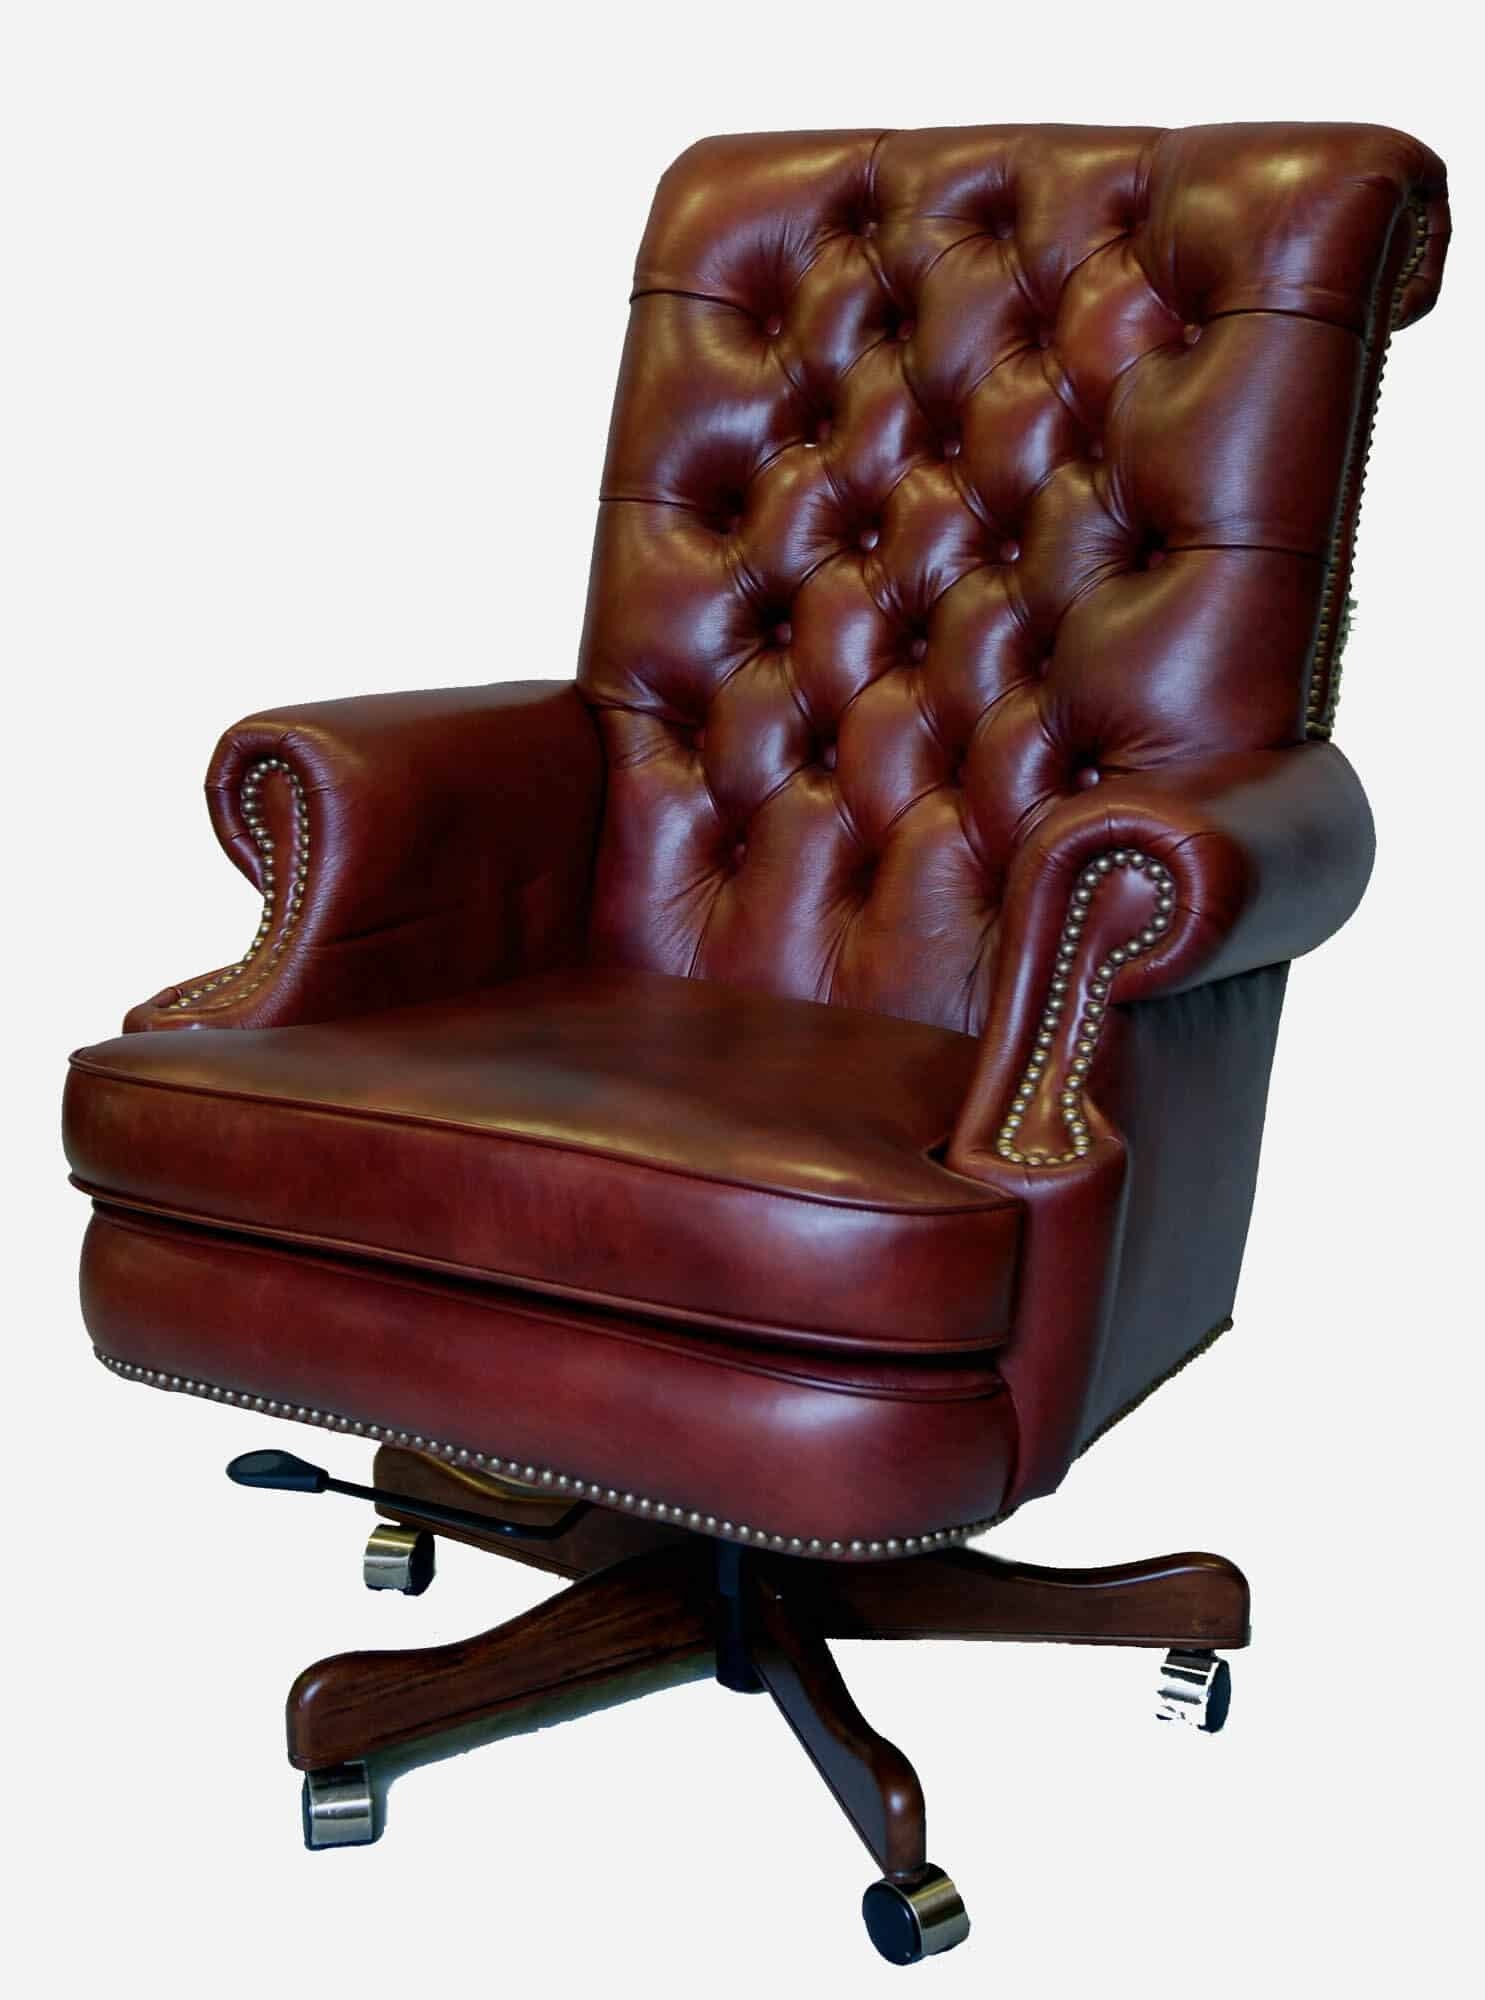 Desk Chairs Office Chair Guide And How To Buy A Desk Chair 43 Top 10